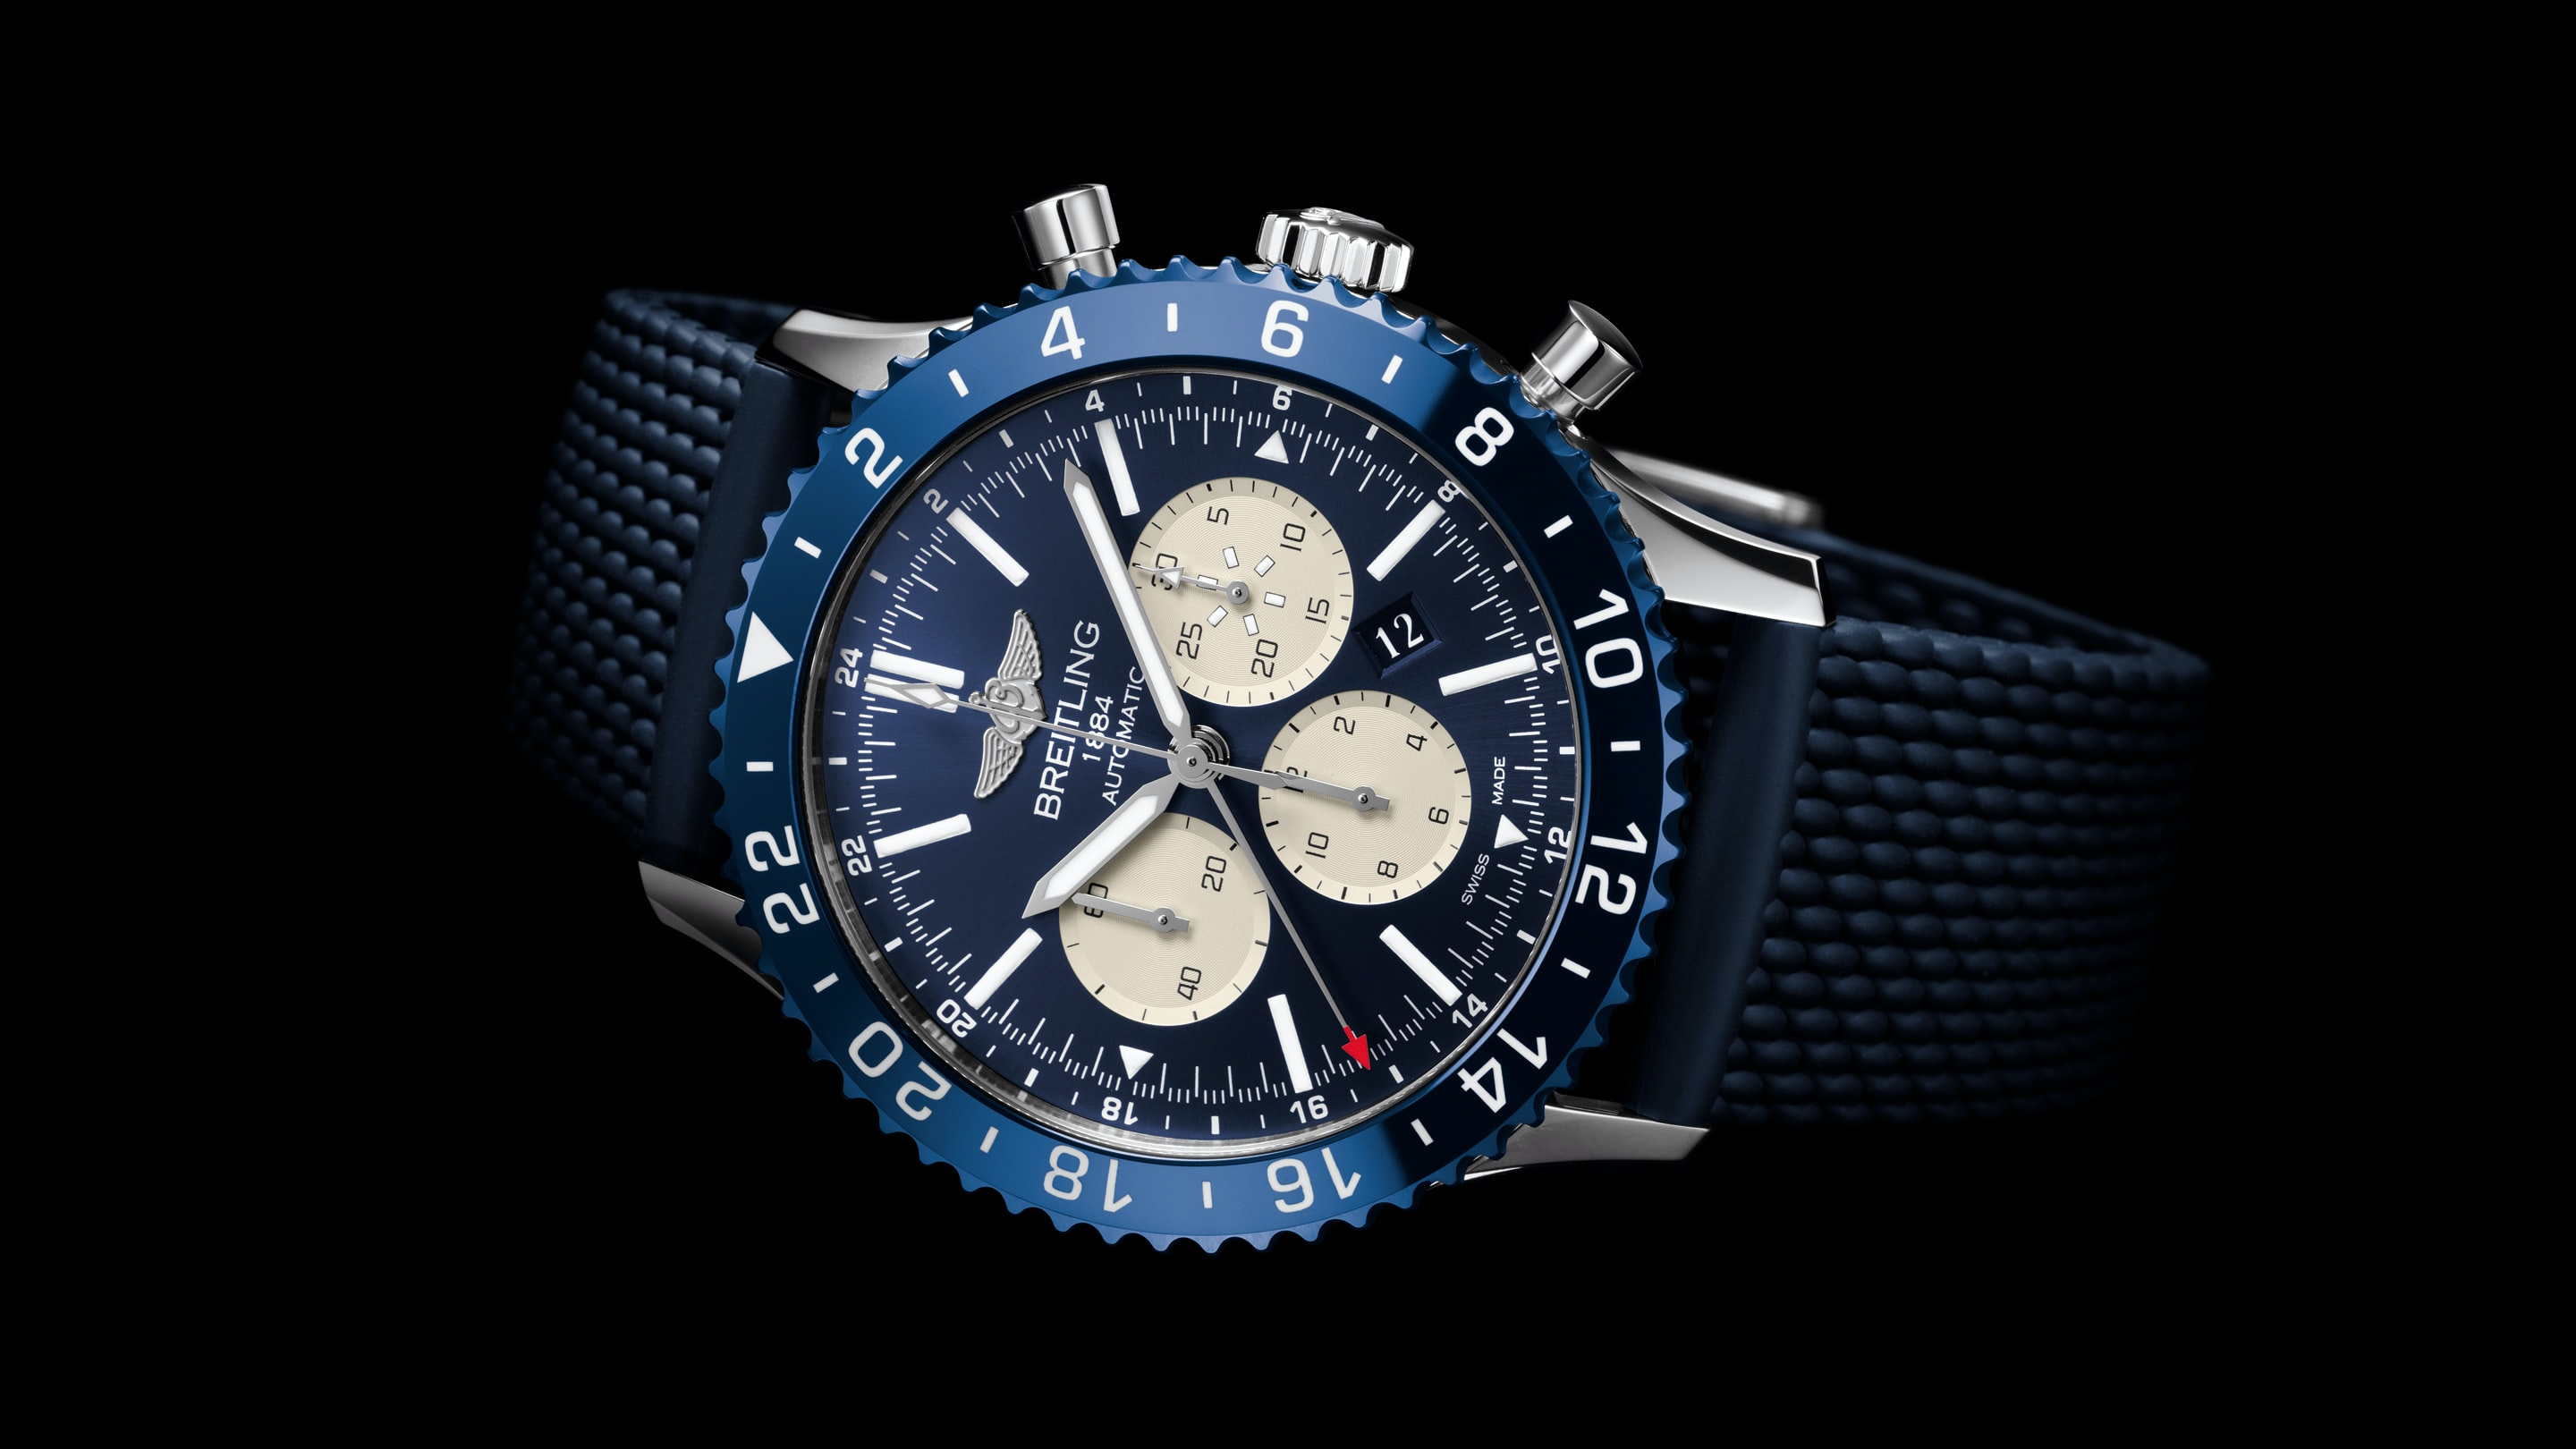 Breitling.jpg?ixlib=rails 1.1 Introducing: The Breitling Chronoliner B04 Boutique Edition Introducing: The Breitling Chronoliner B04 Boutique Edition breitling